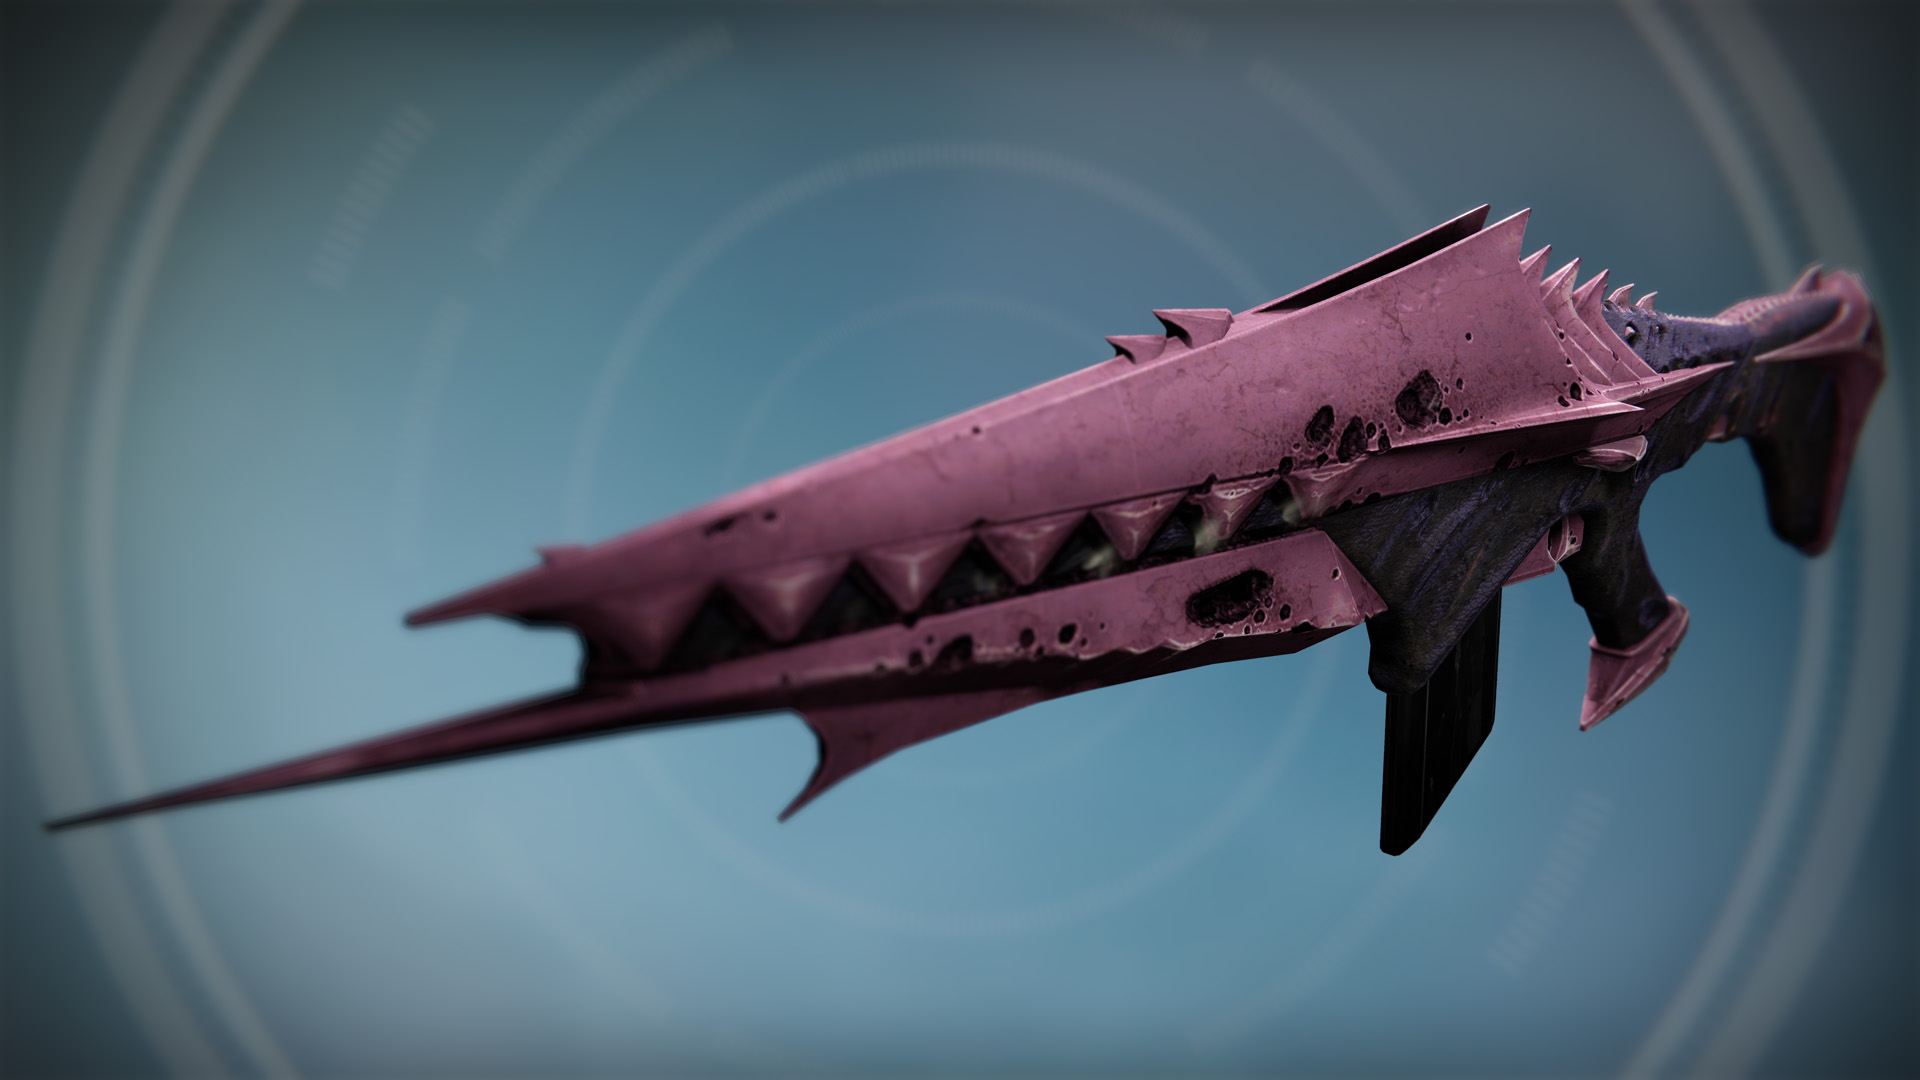 destiny: age of triumph – adept weapons are shown off in these new